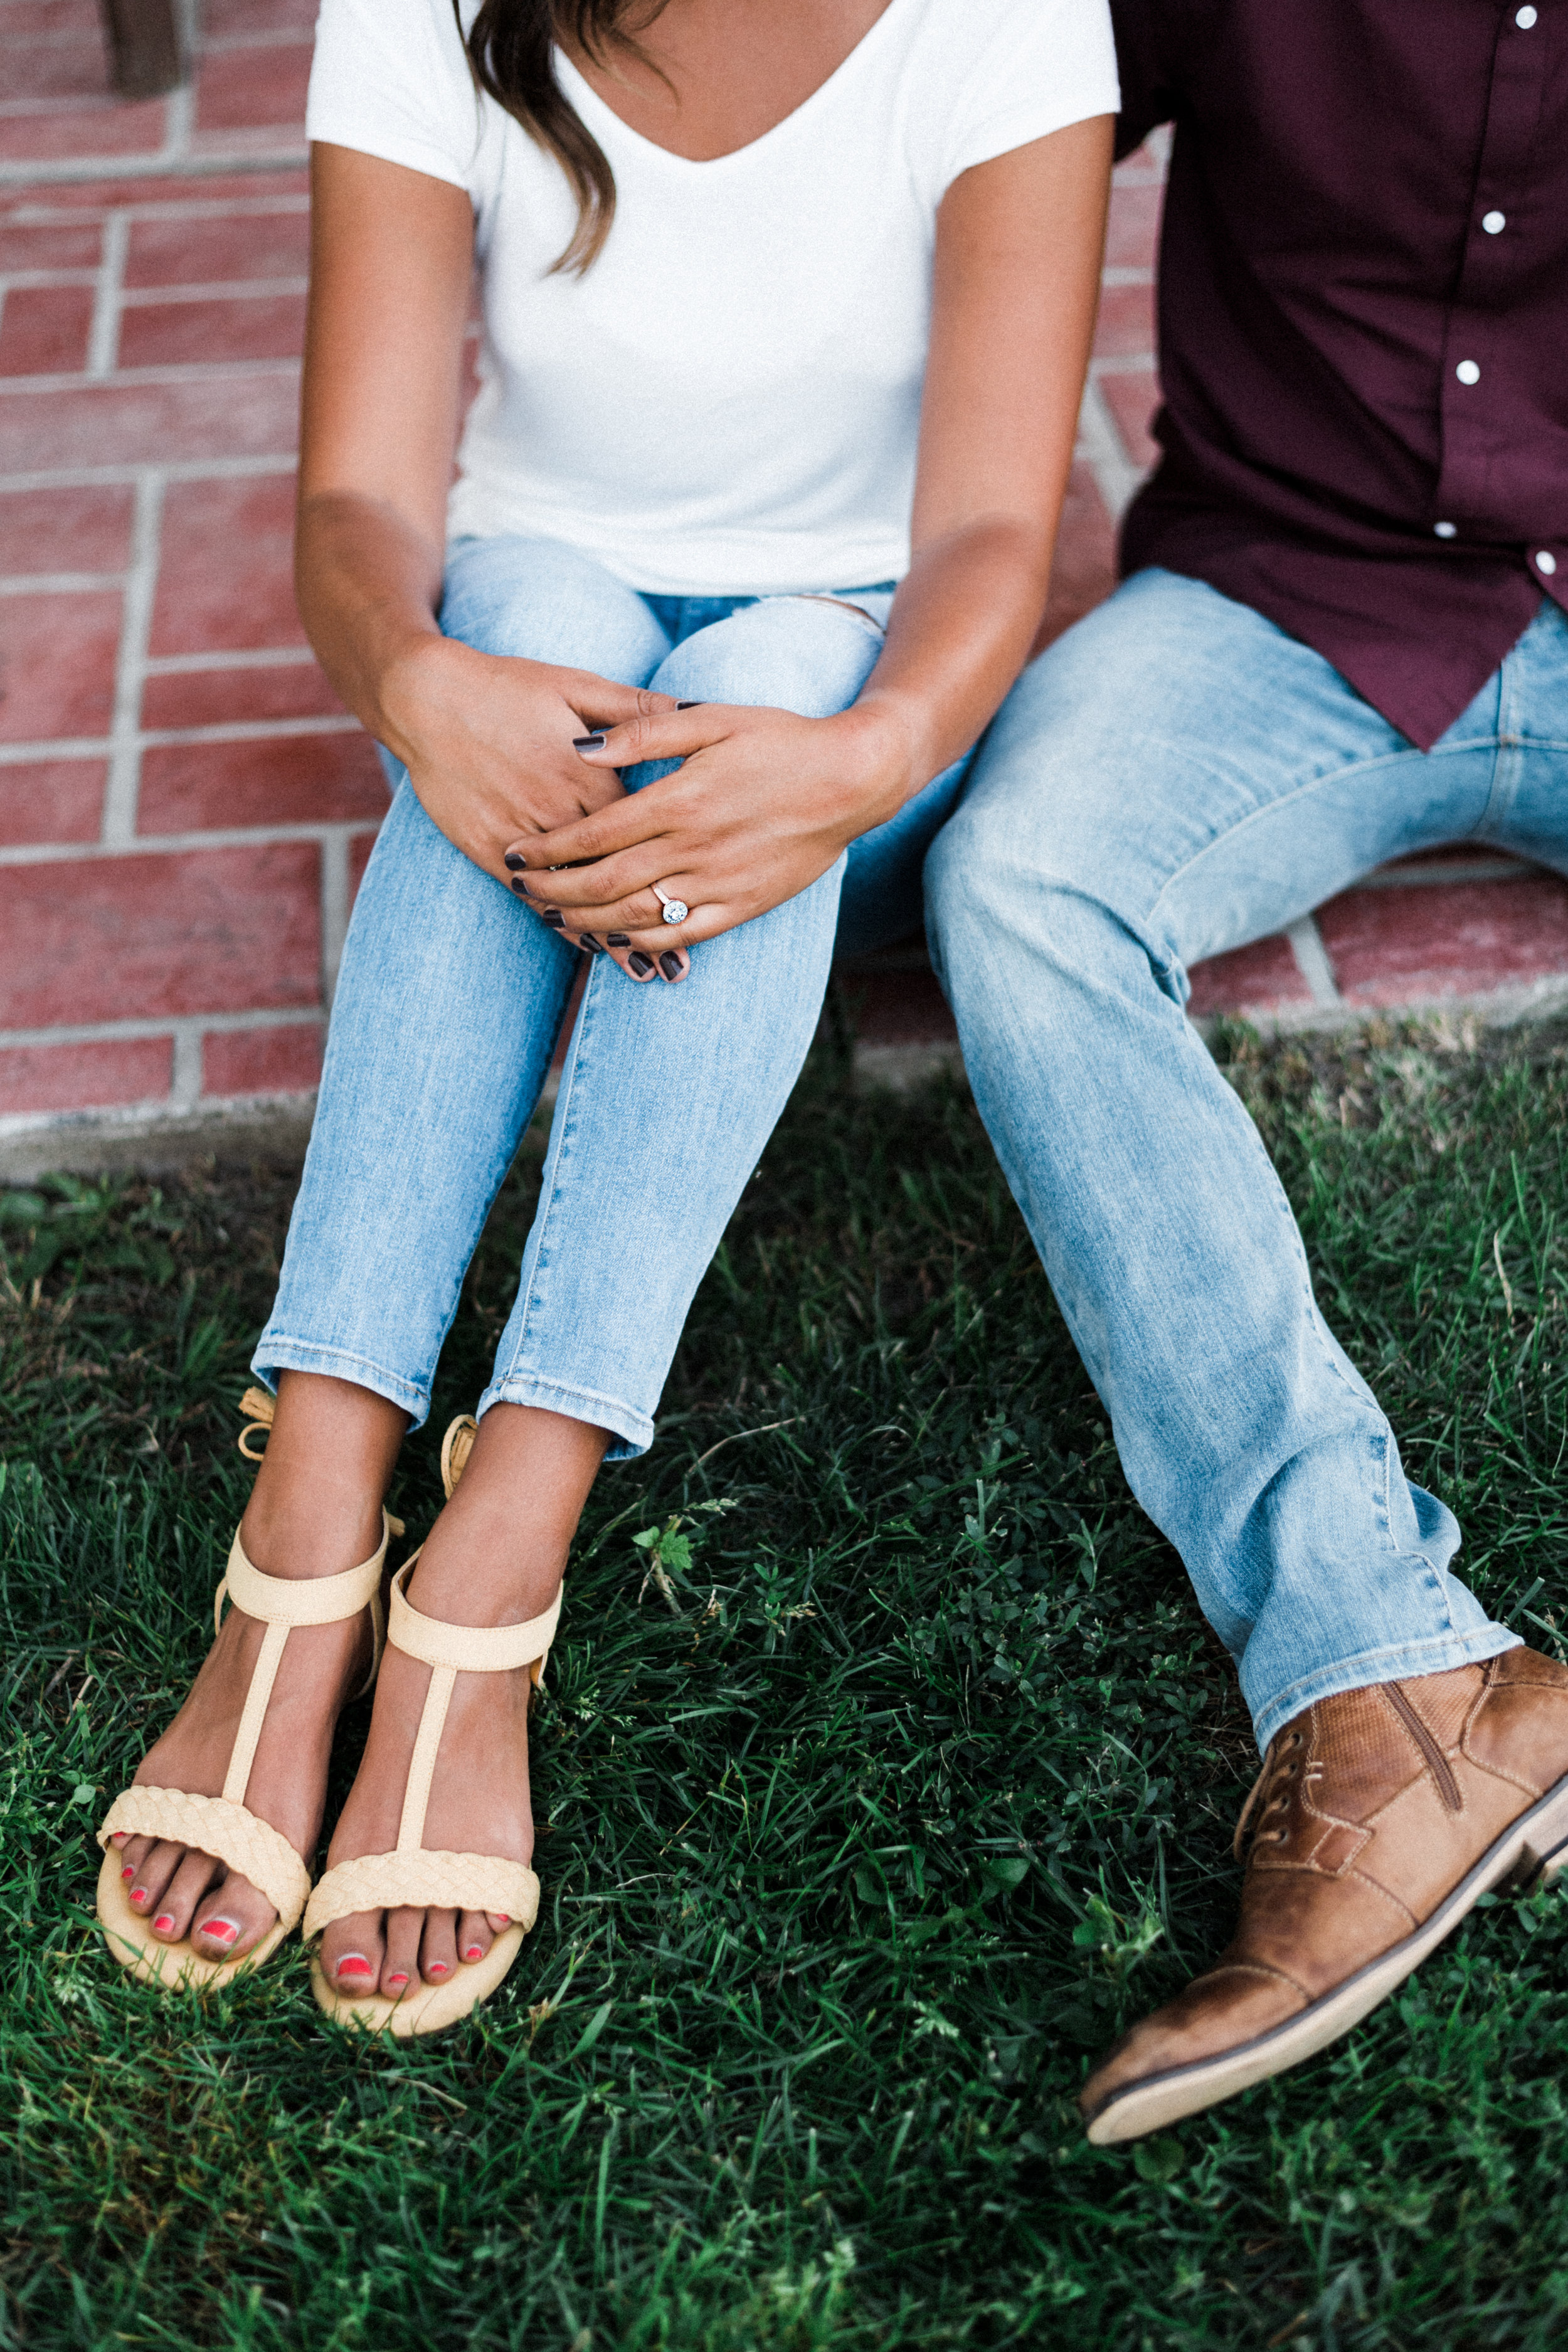 Woman wearing jeans and yellow sandals shows off her engagement ring.